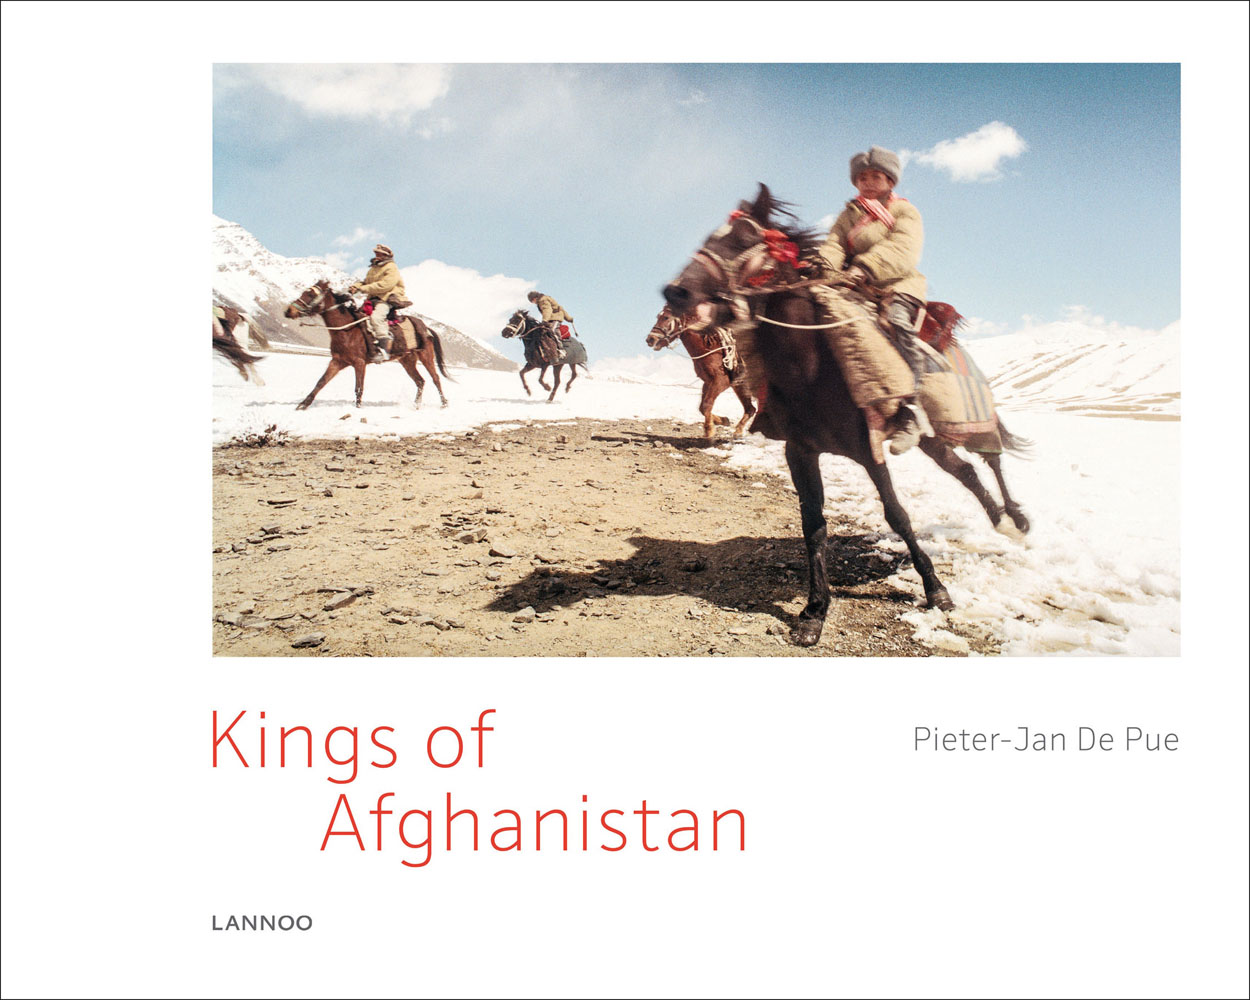 The Kings of Afghanistan